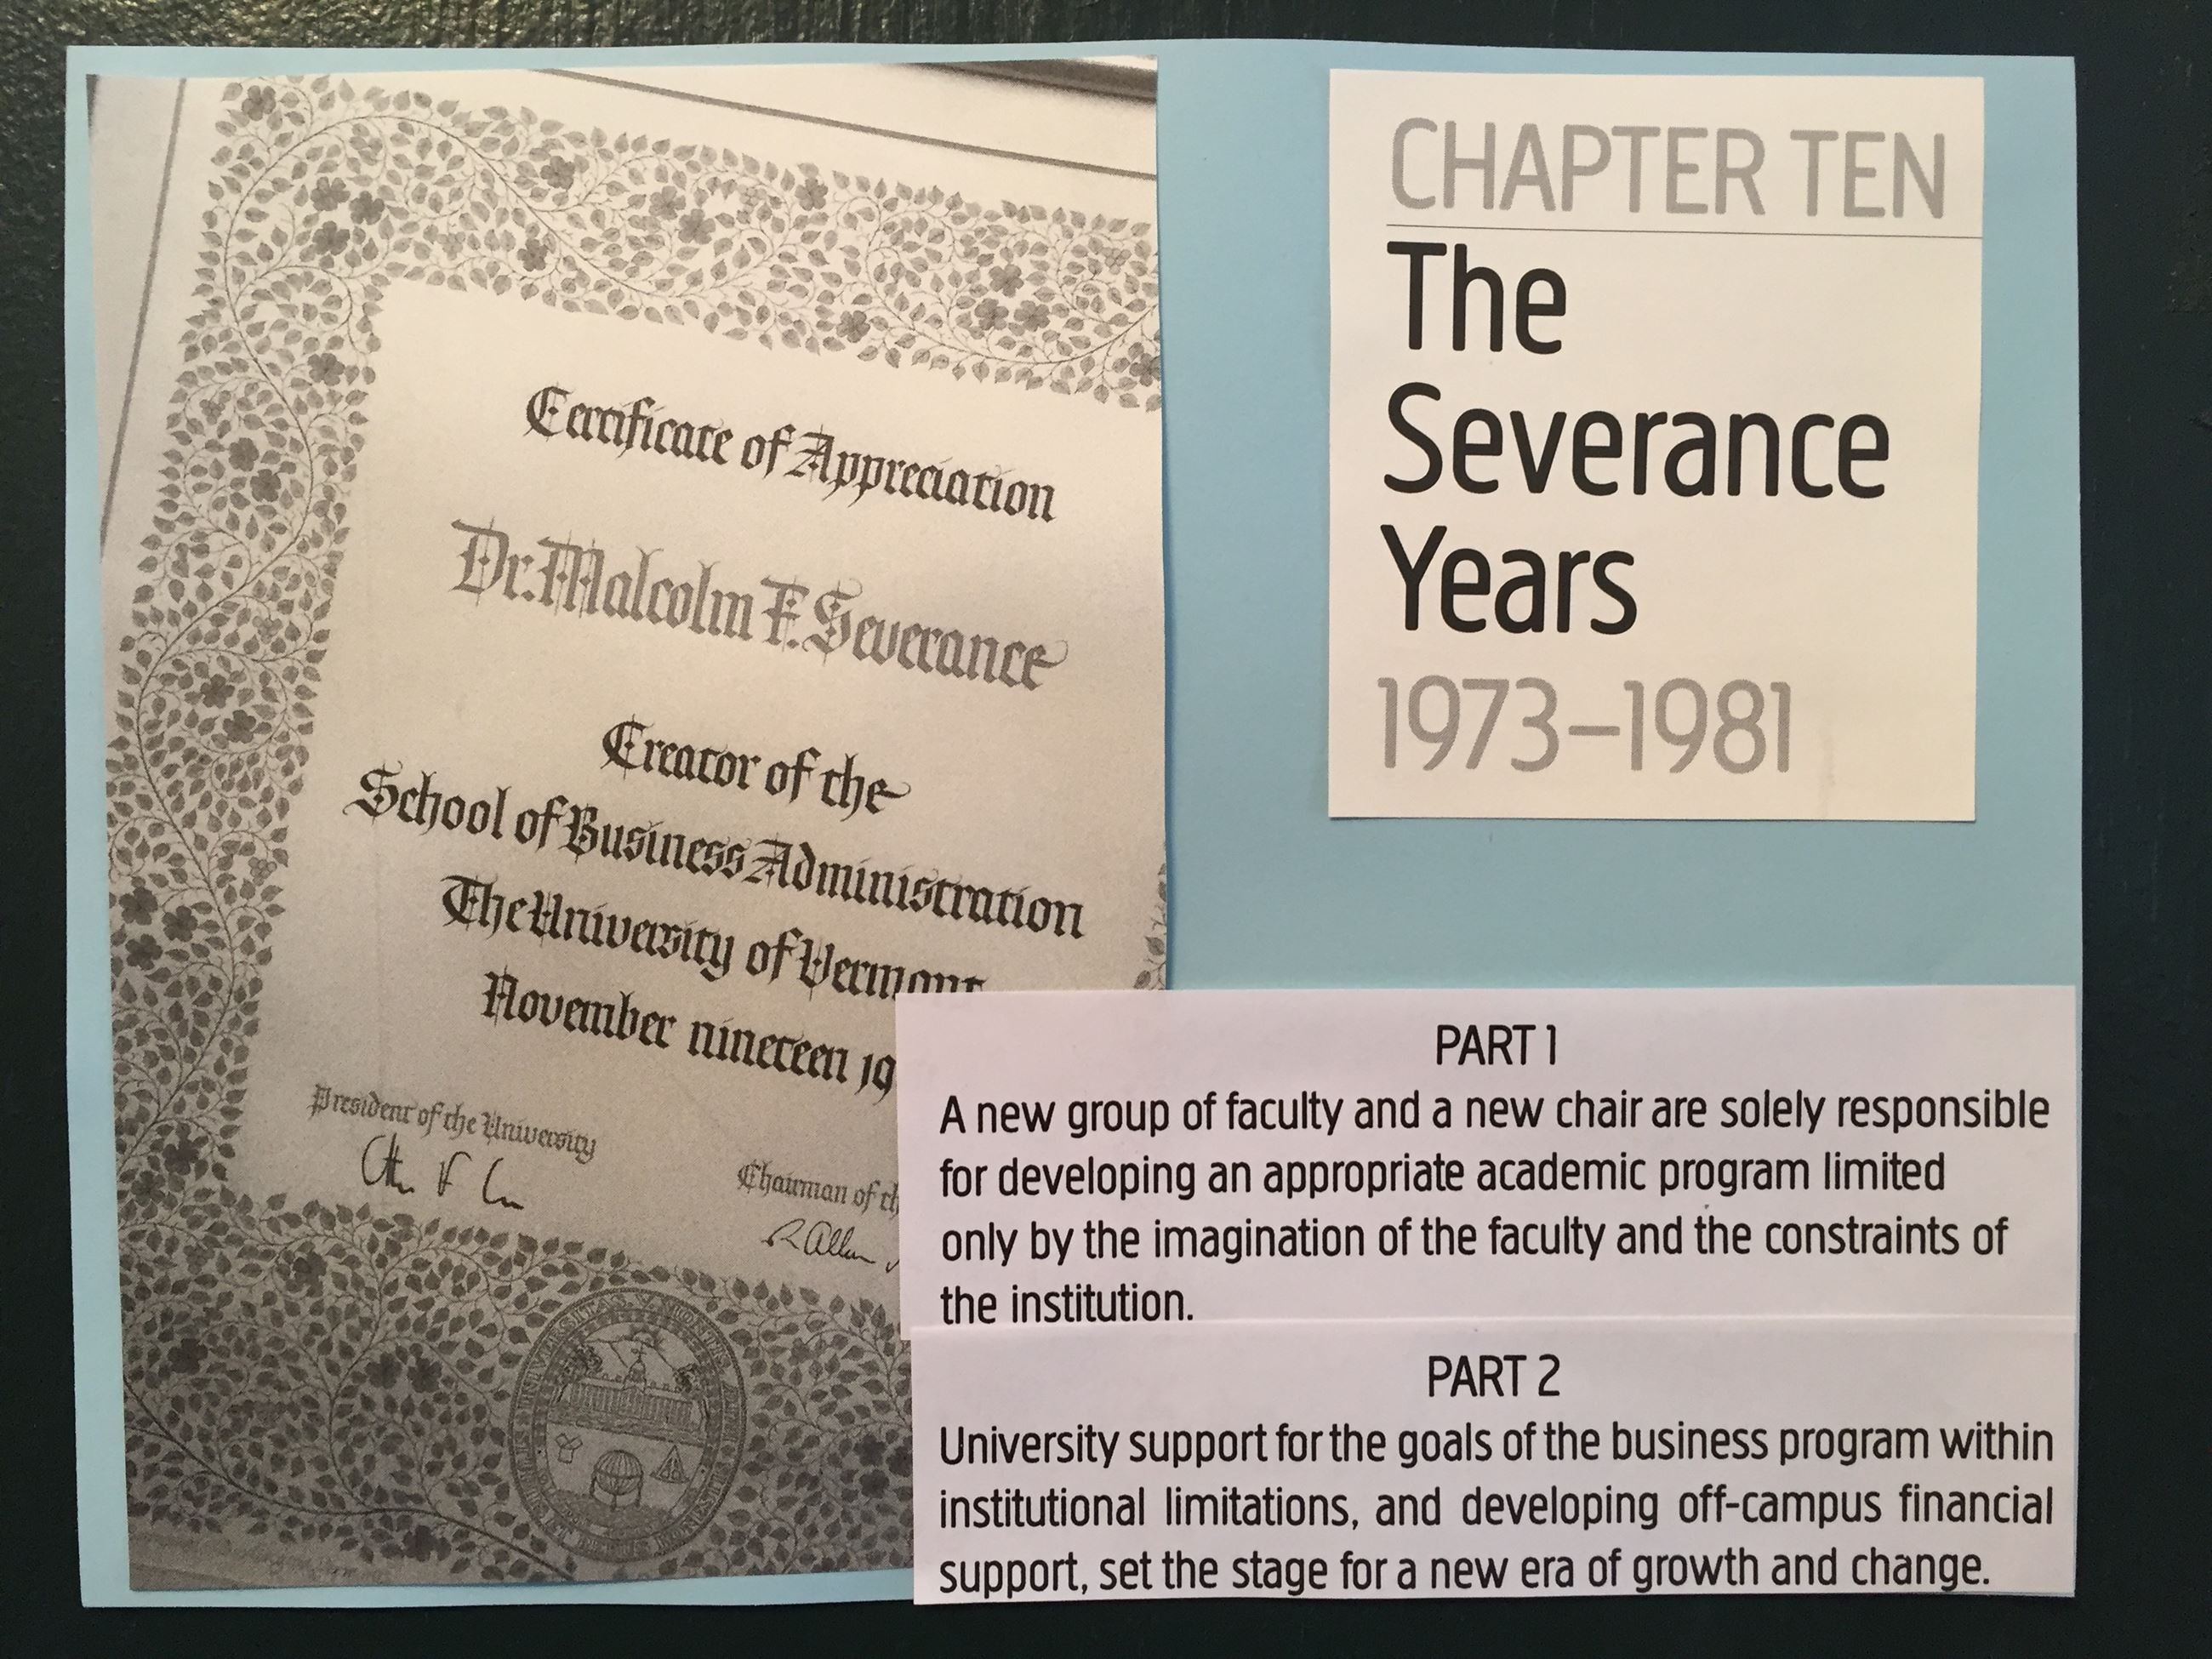 The Severance Years